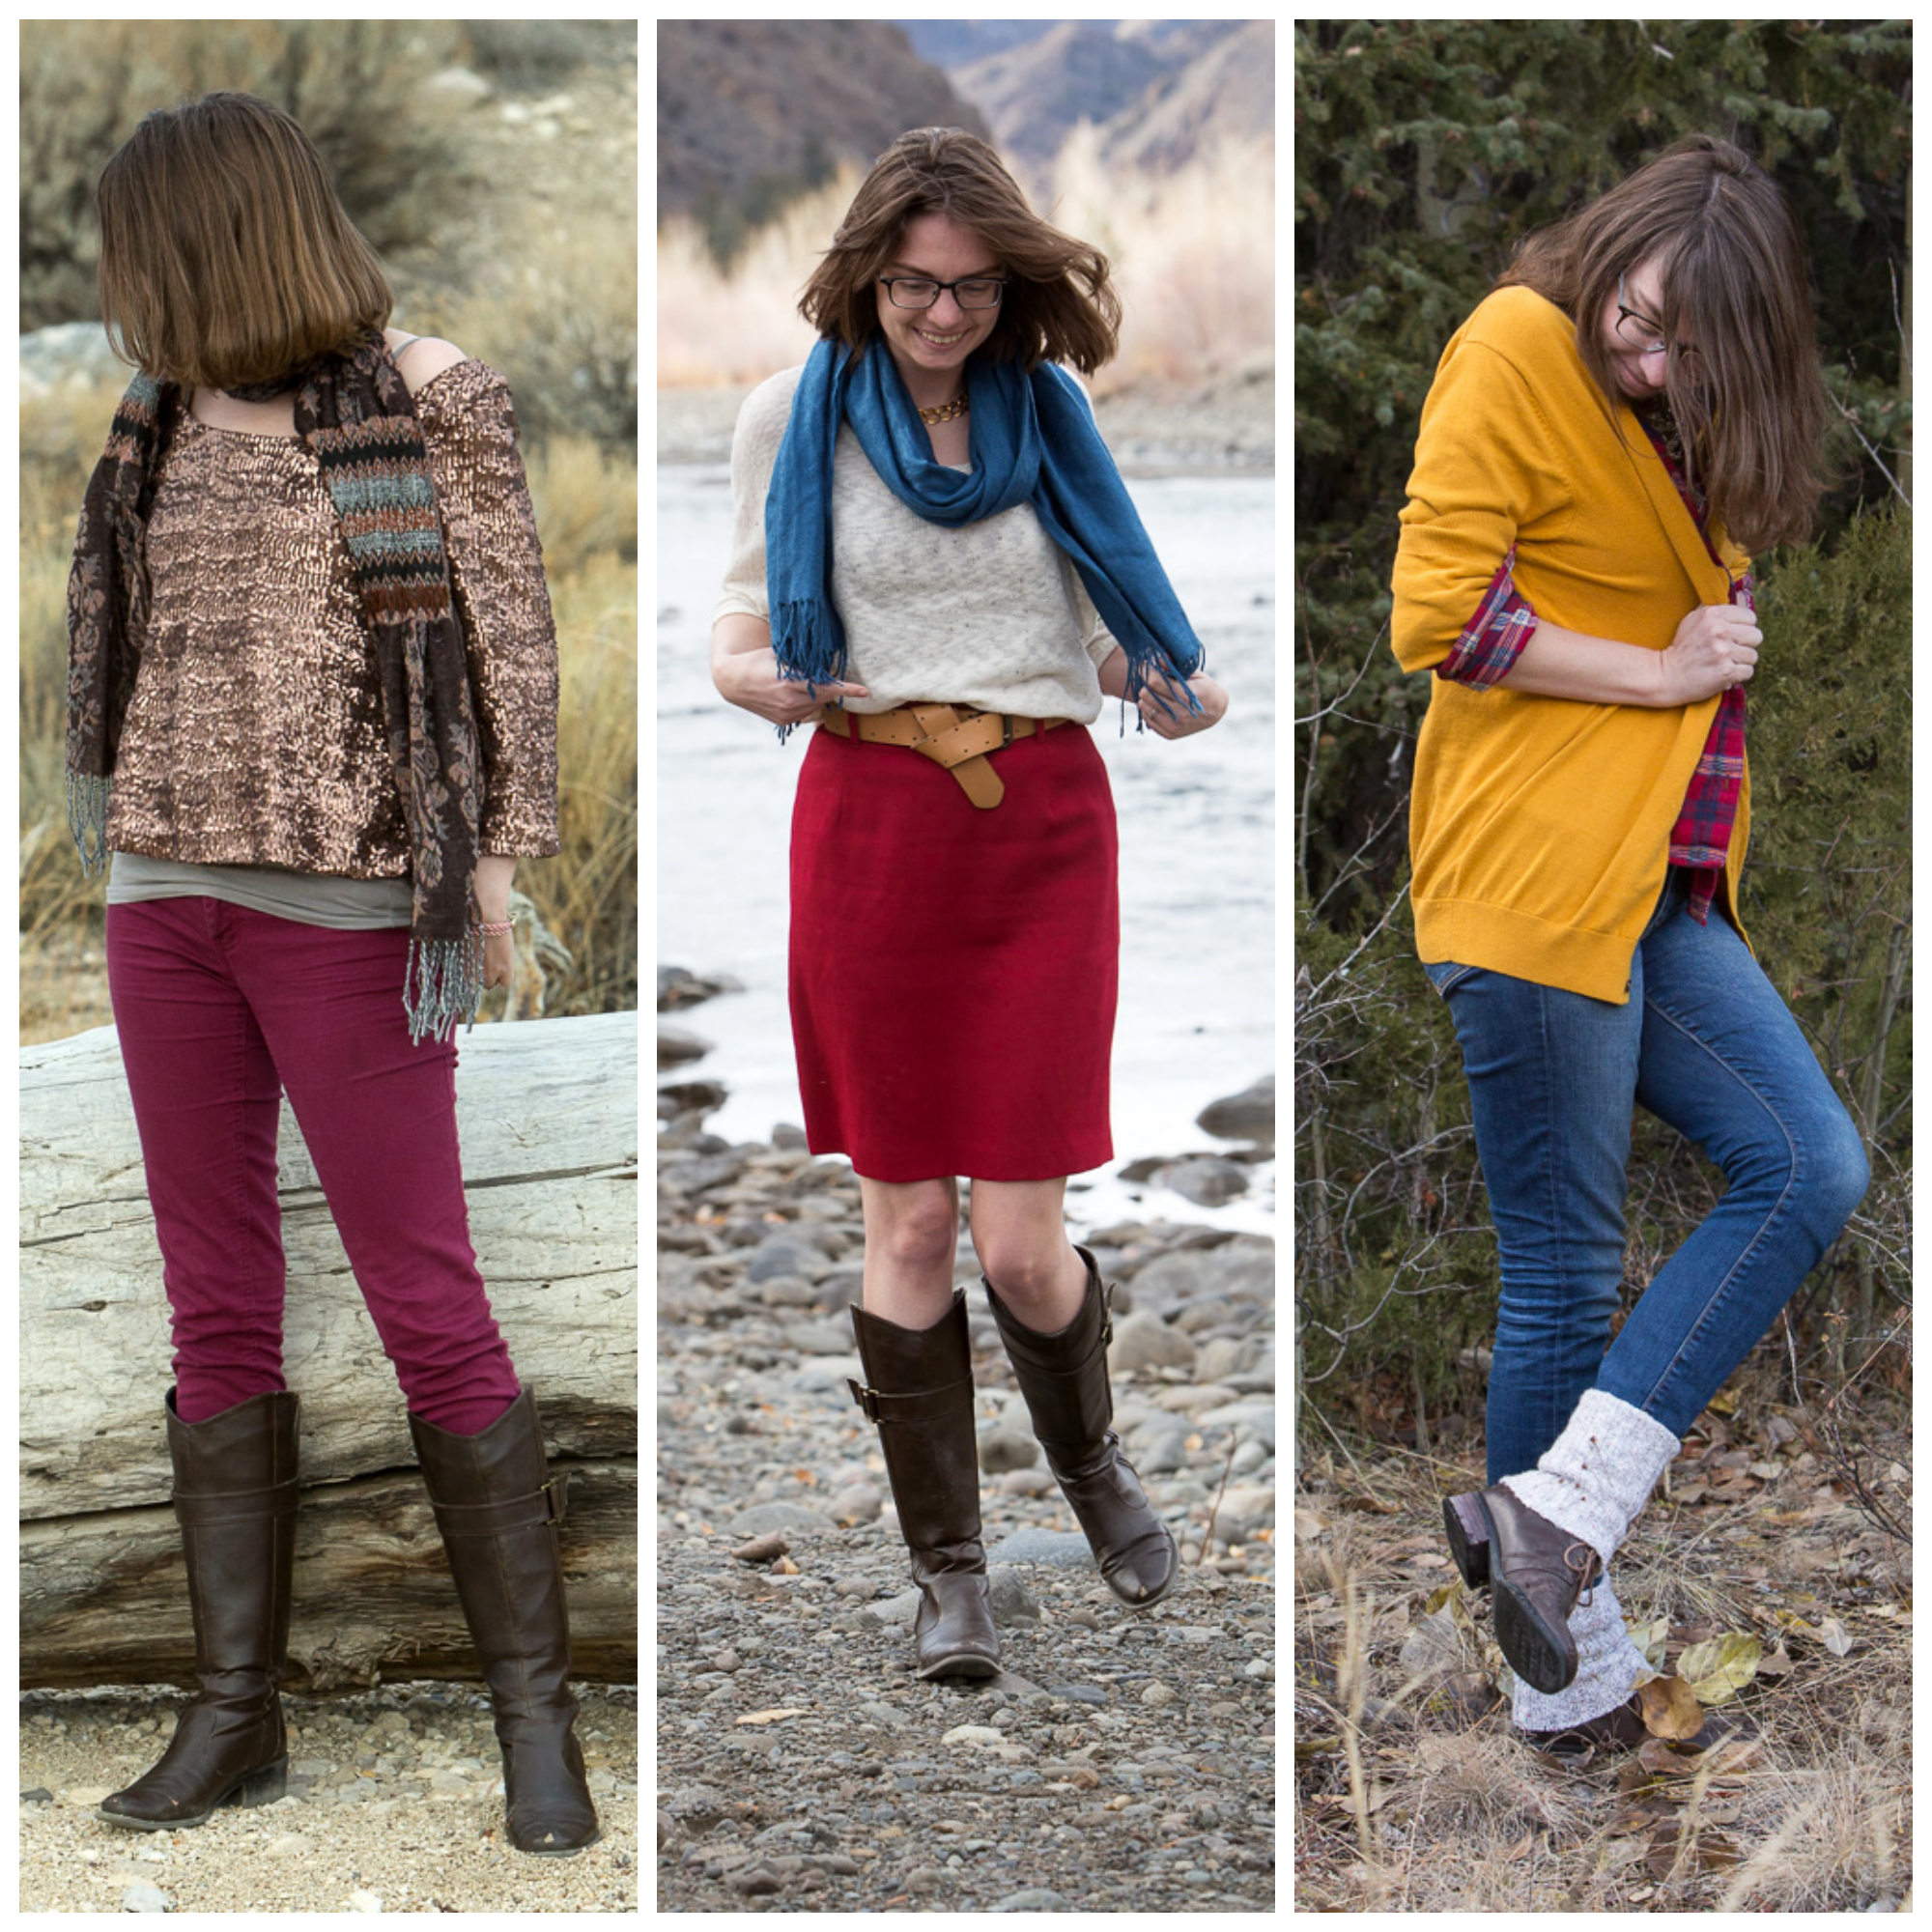 glitter-shirt, scarf, red-pencil-skirt, plaid, yellow-cardi,wyoming, outdoors, never-fully-dressed-without-a-style,